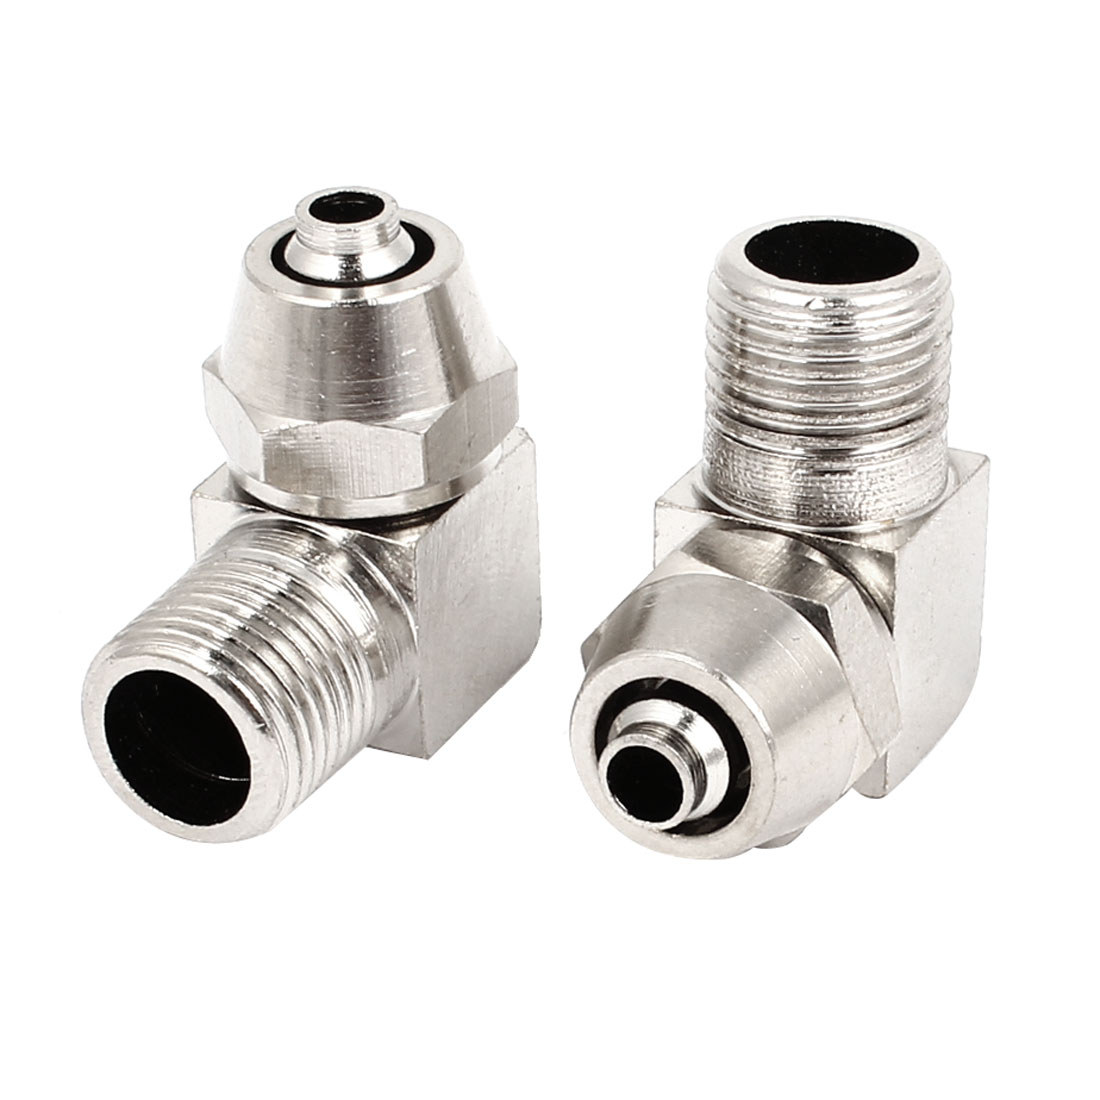 2 Pcs 4mmx9mm Air Hose 1/8PT Male Thread Right Angle Quick Coupler Connector